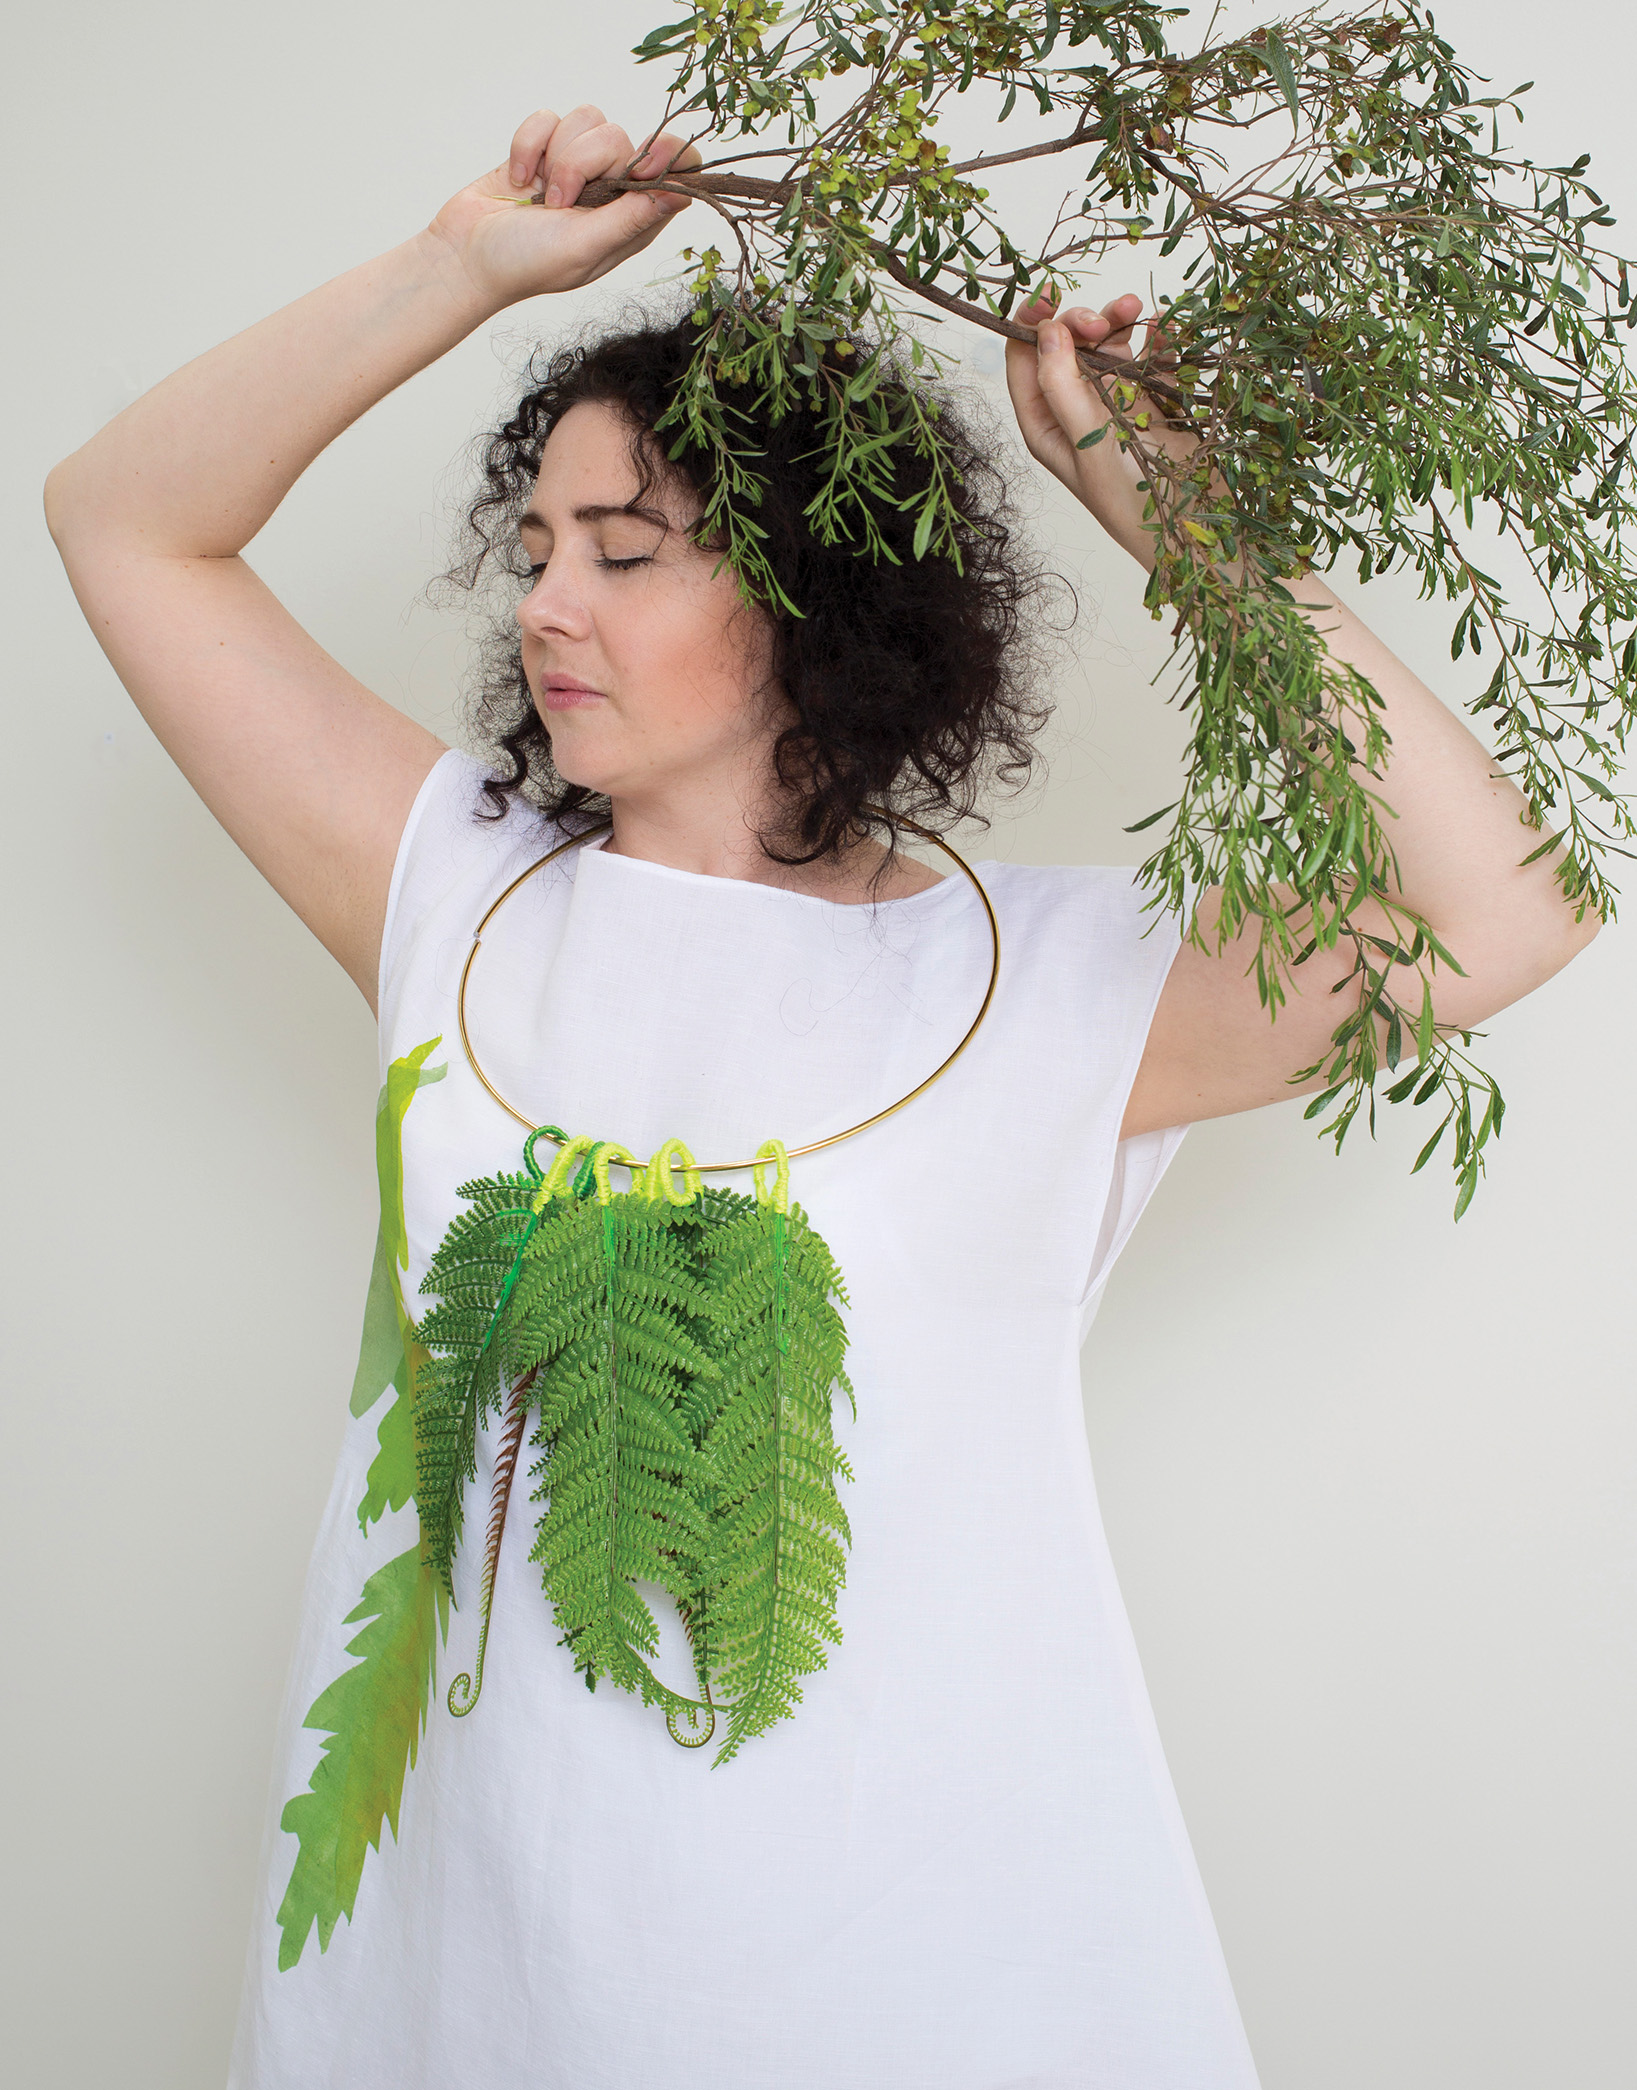 Fern lei  2017, artificial foliage, metal ring, thread, paint.  Fern dress  2017, short white linen-cotton, hand cut stencil print, one-off . Photographed by Craig Arnold